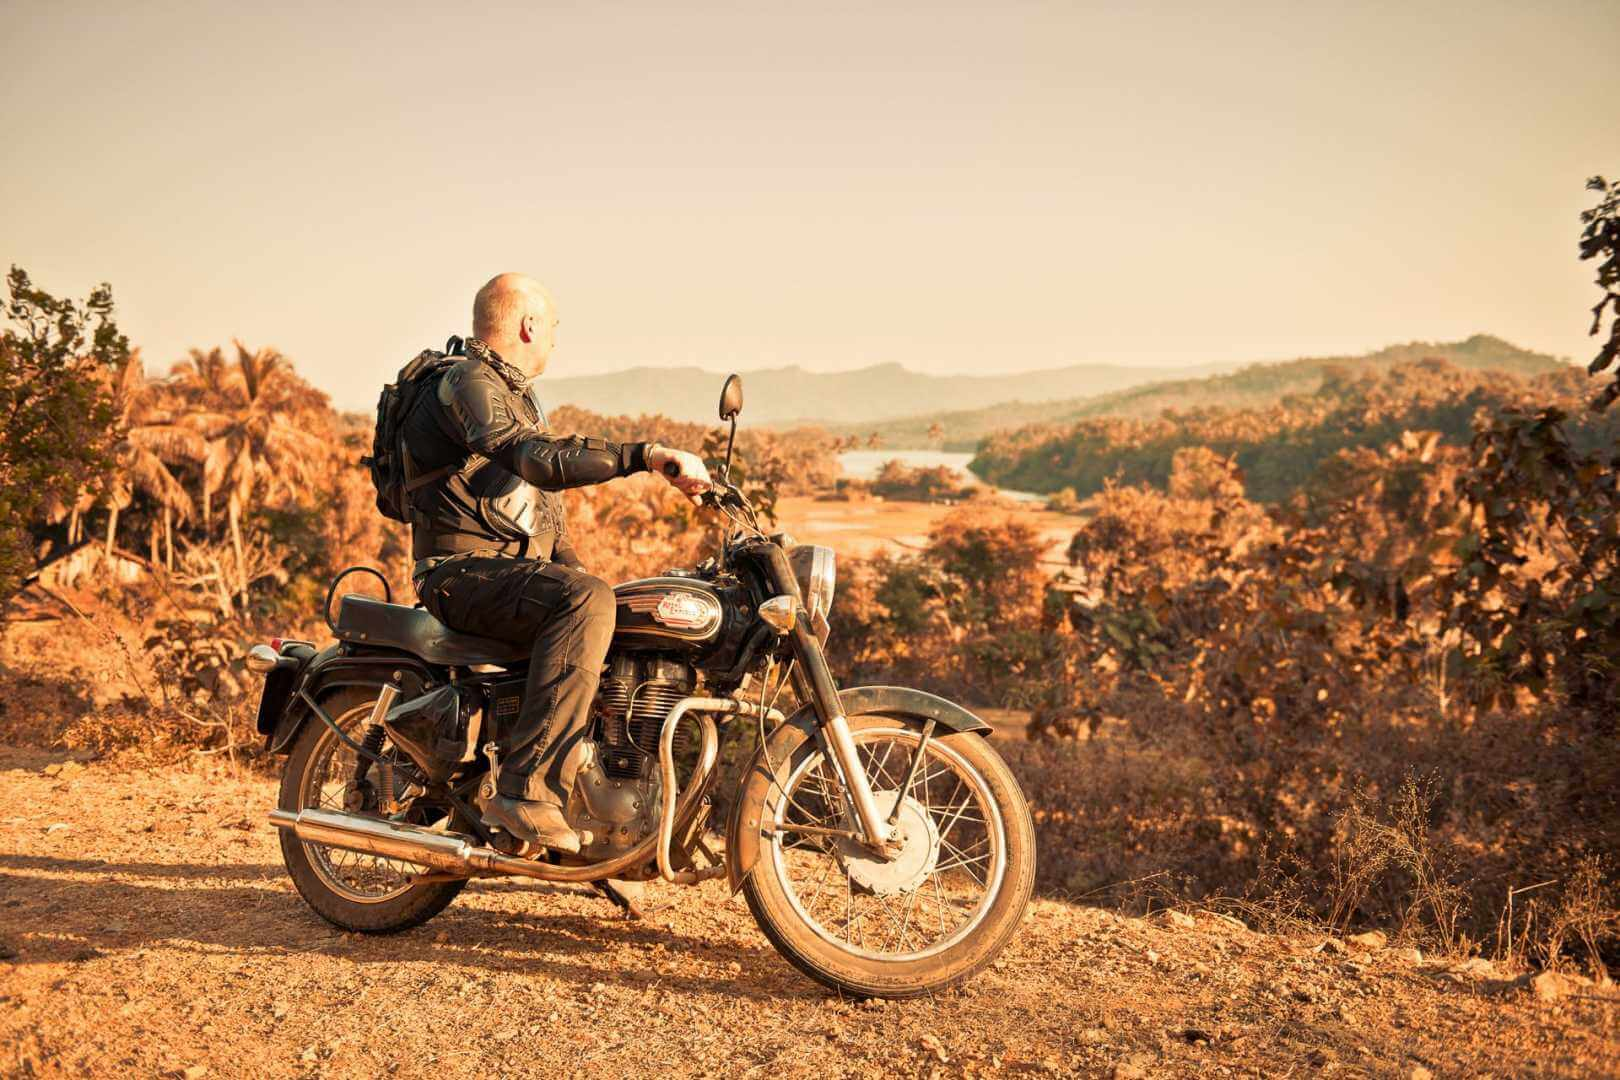 Motorcyclist enjoying Indian views